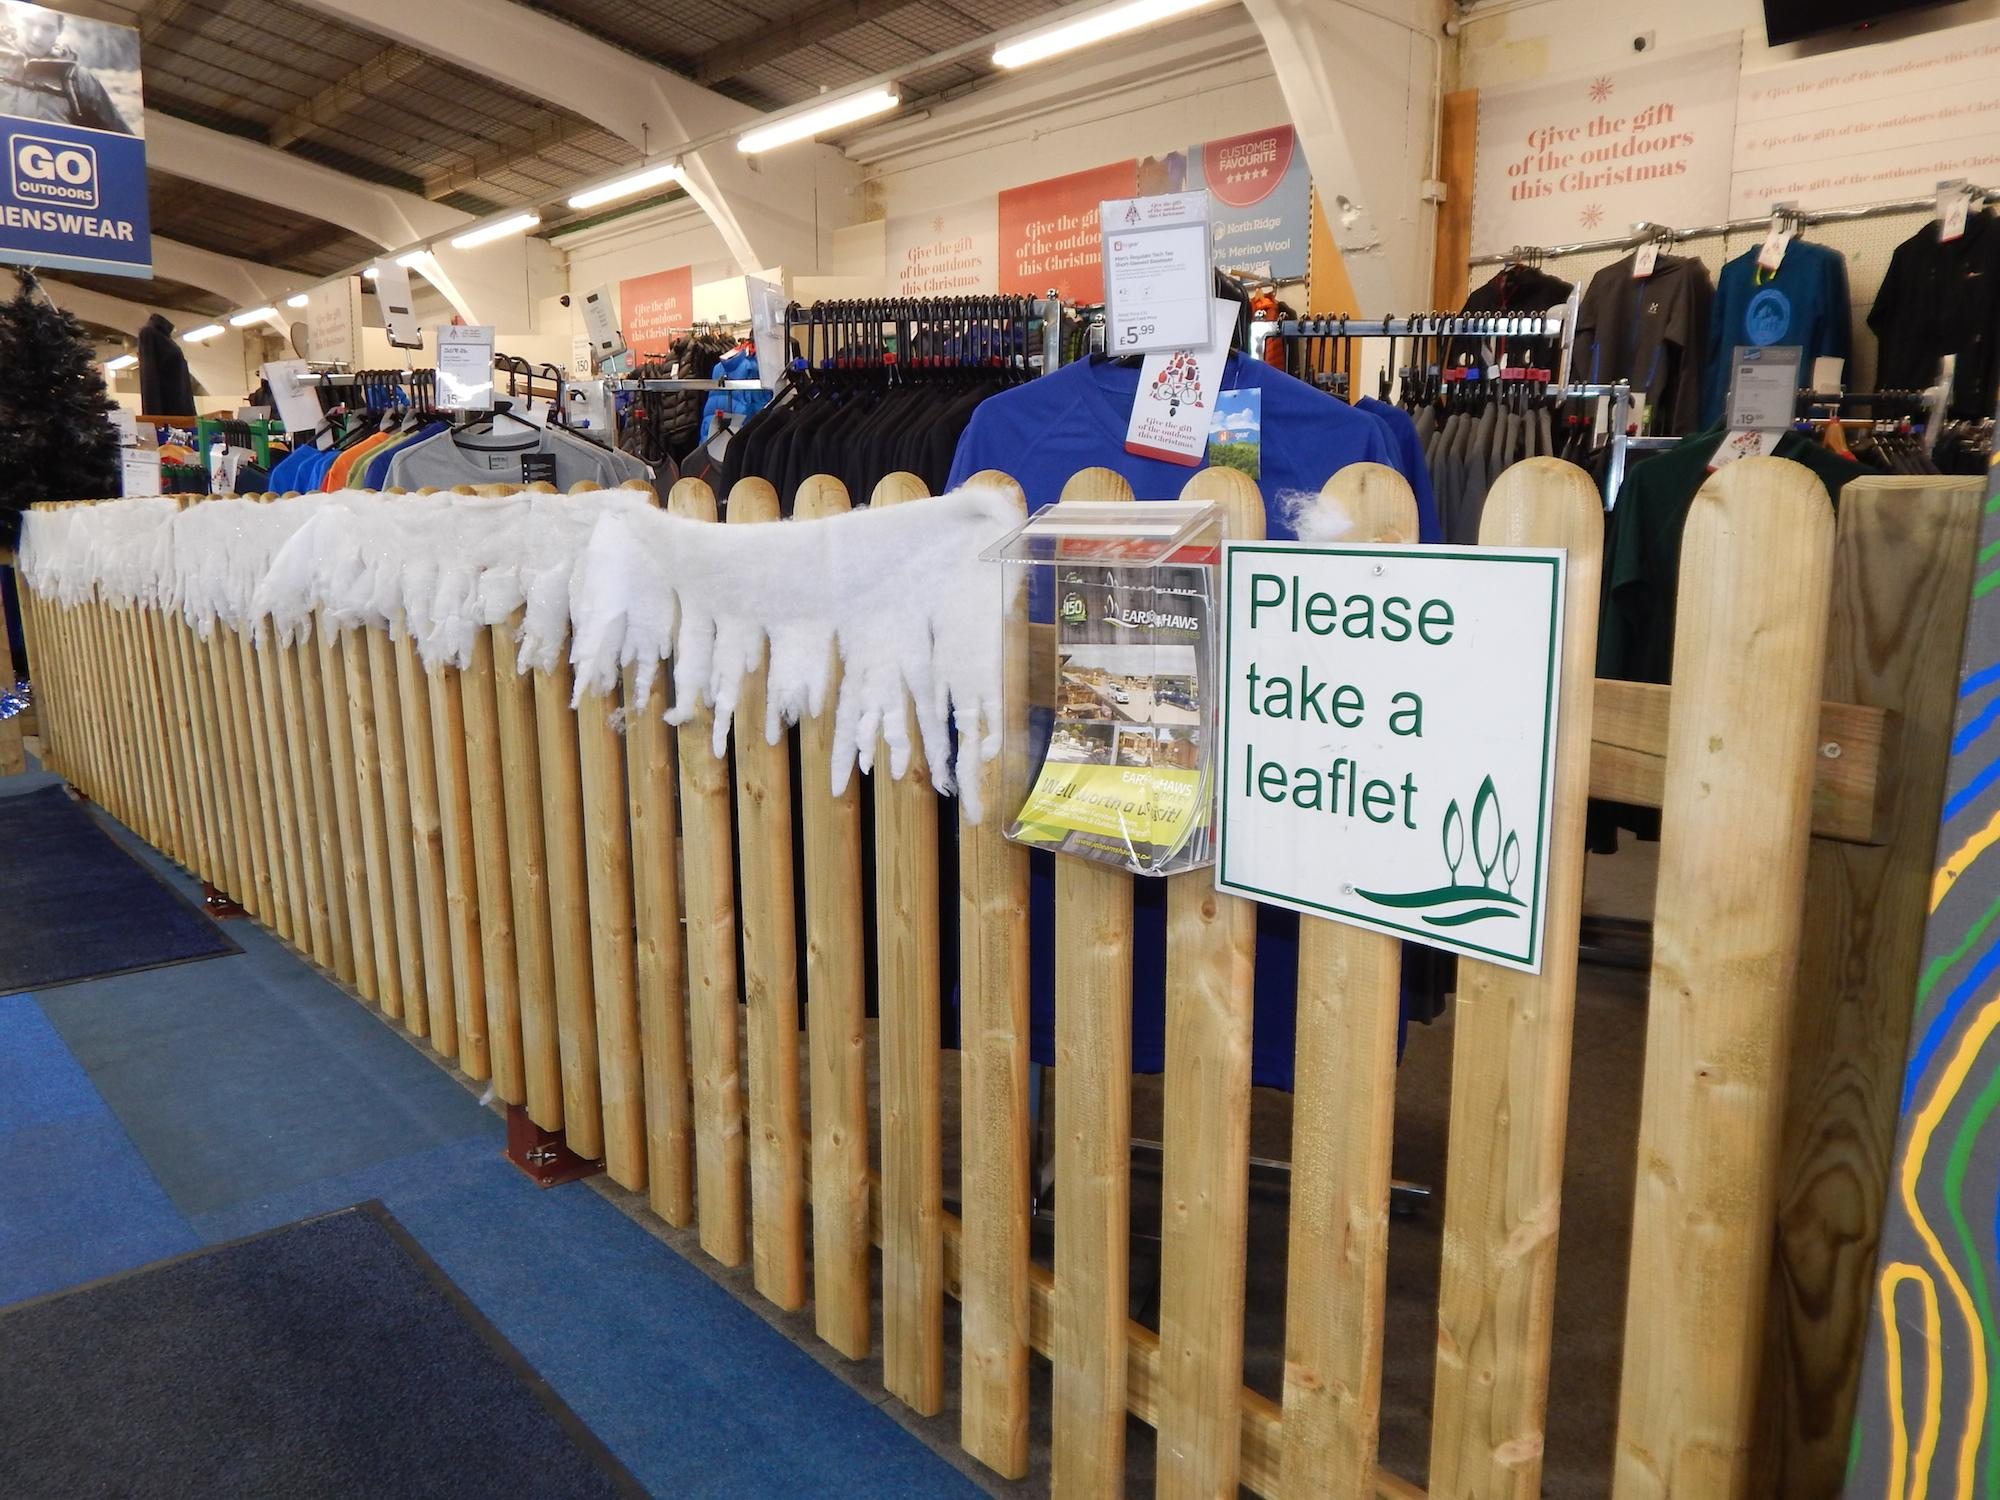 Earnshaws Fencing Centres in Go Outdoors